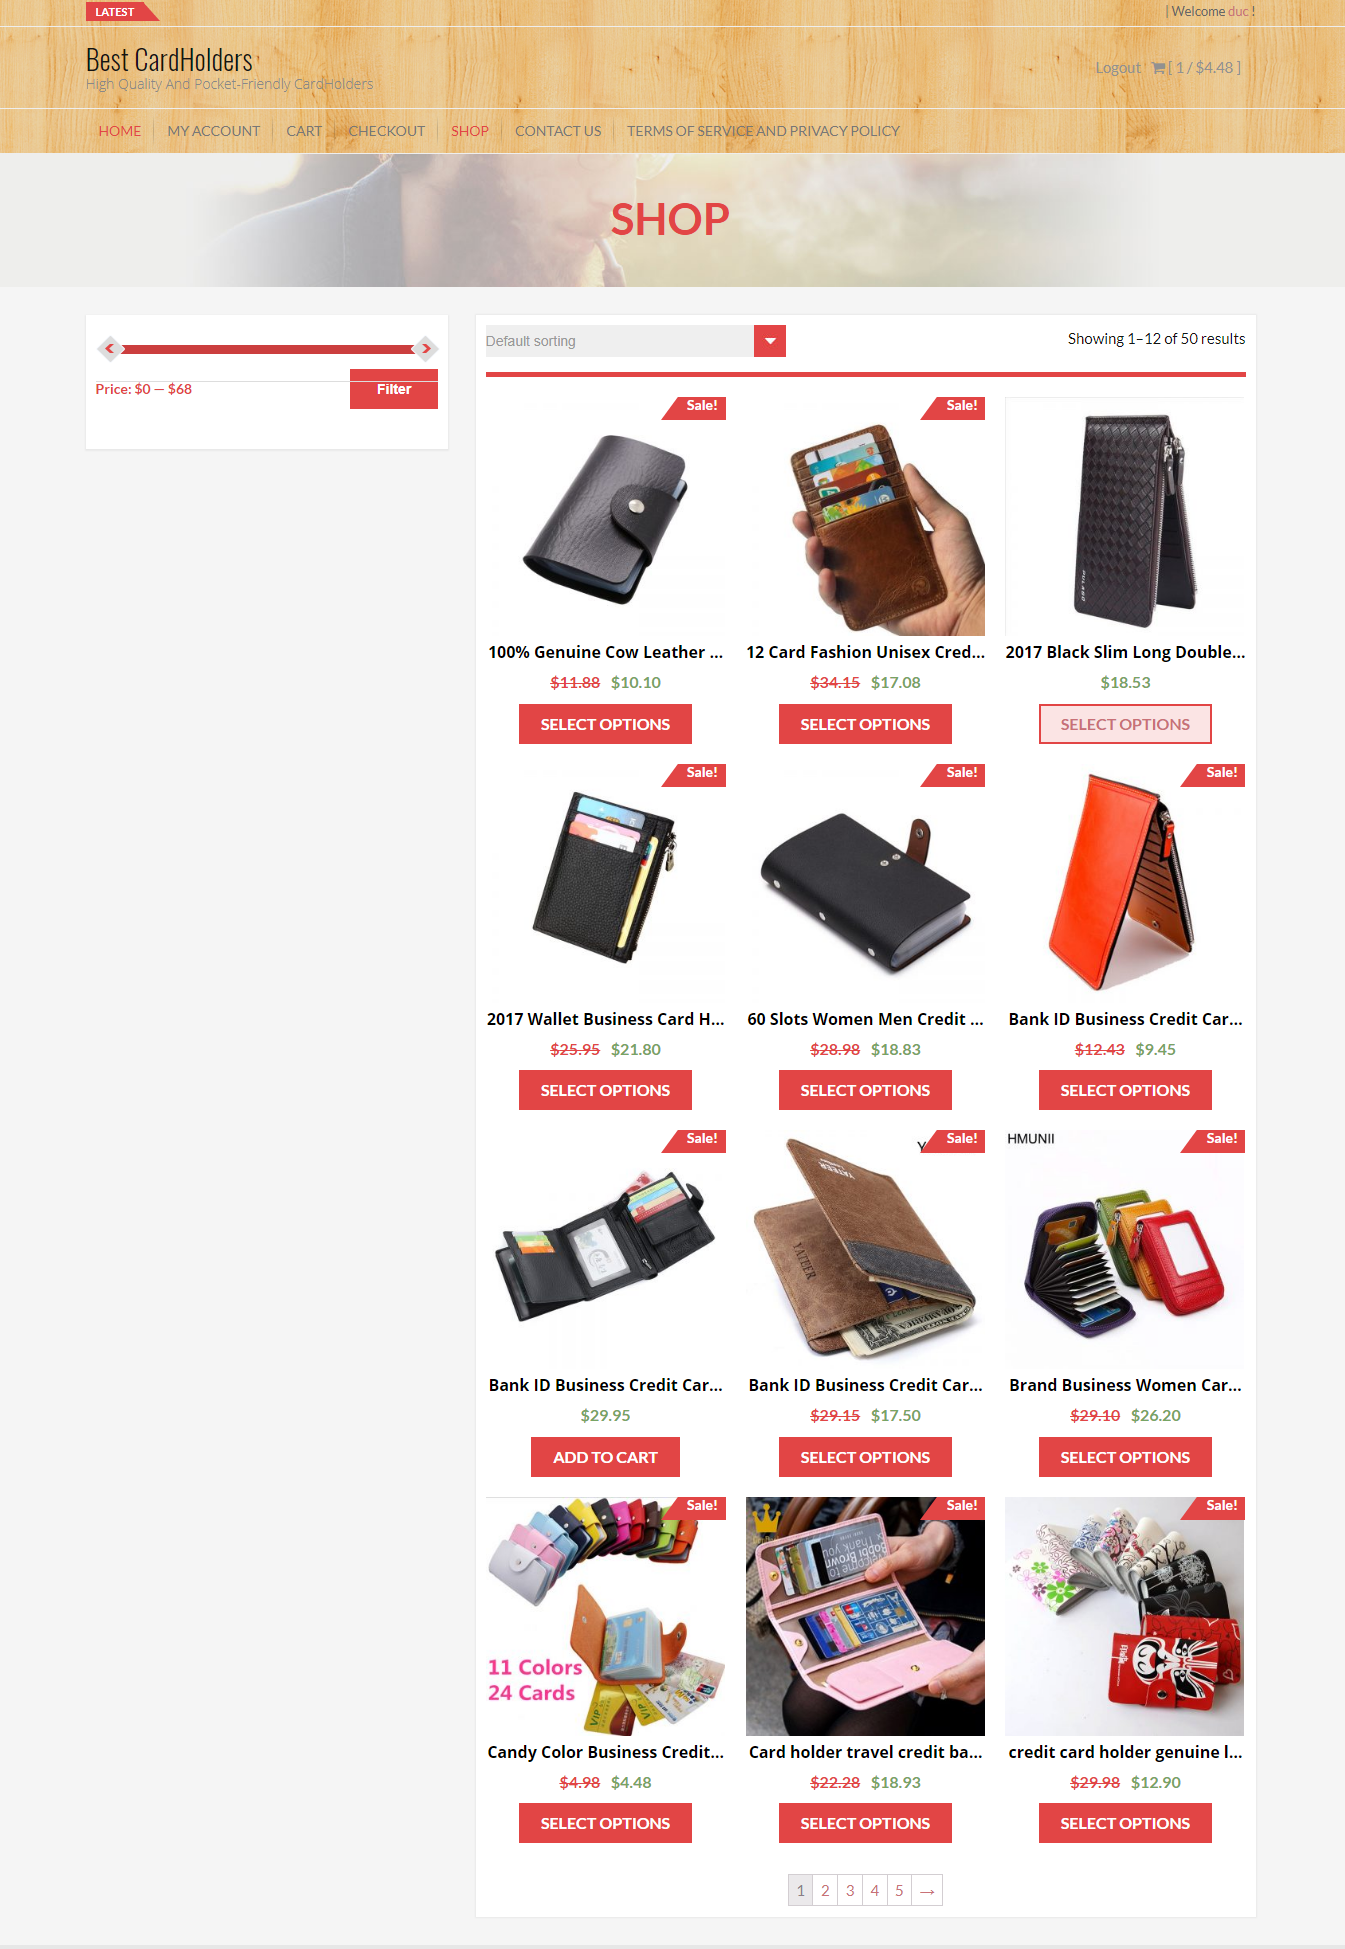 build complete autopilot Aliexpress dropshipping wordpress website for you